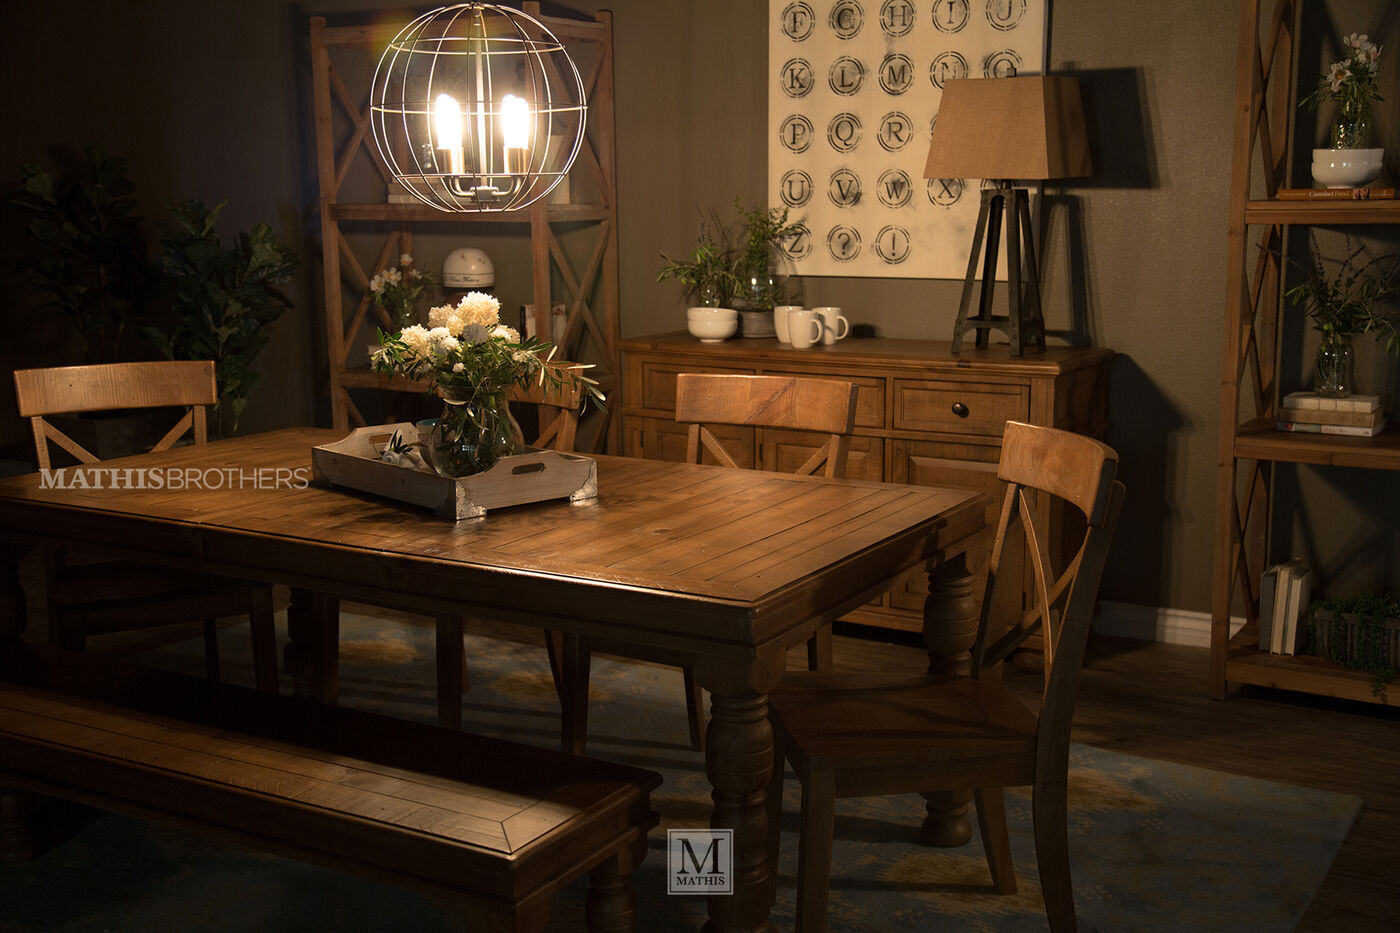 Mathis Brothers Dining Room Table home decor Xshareus : web1 from www.xshare.us size 1400 x 933 jpeg 190kB